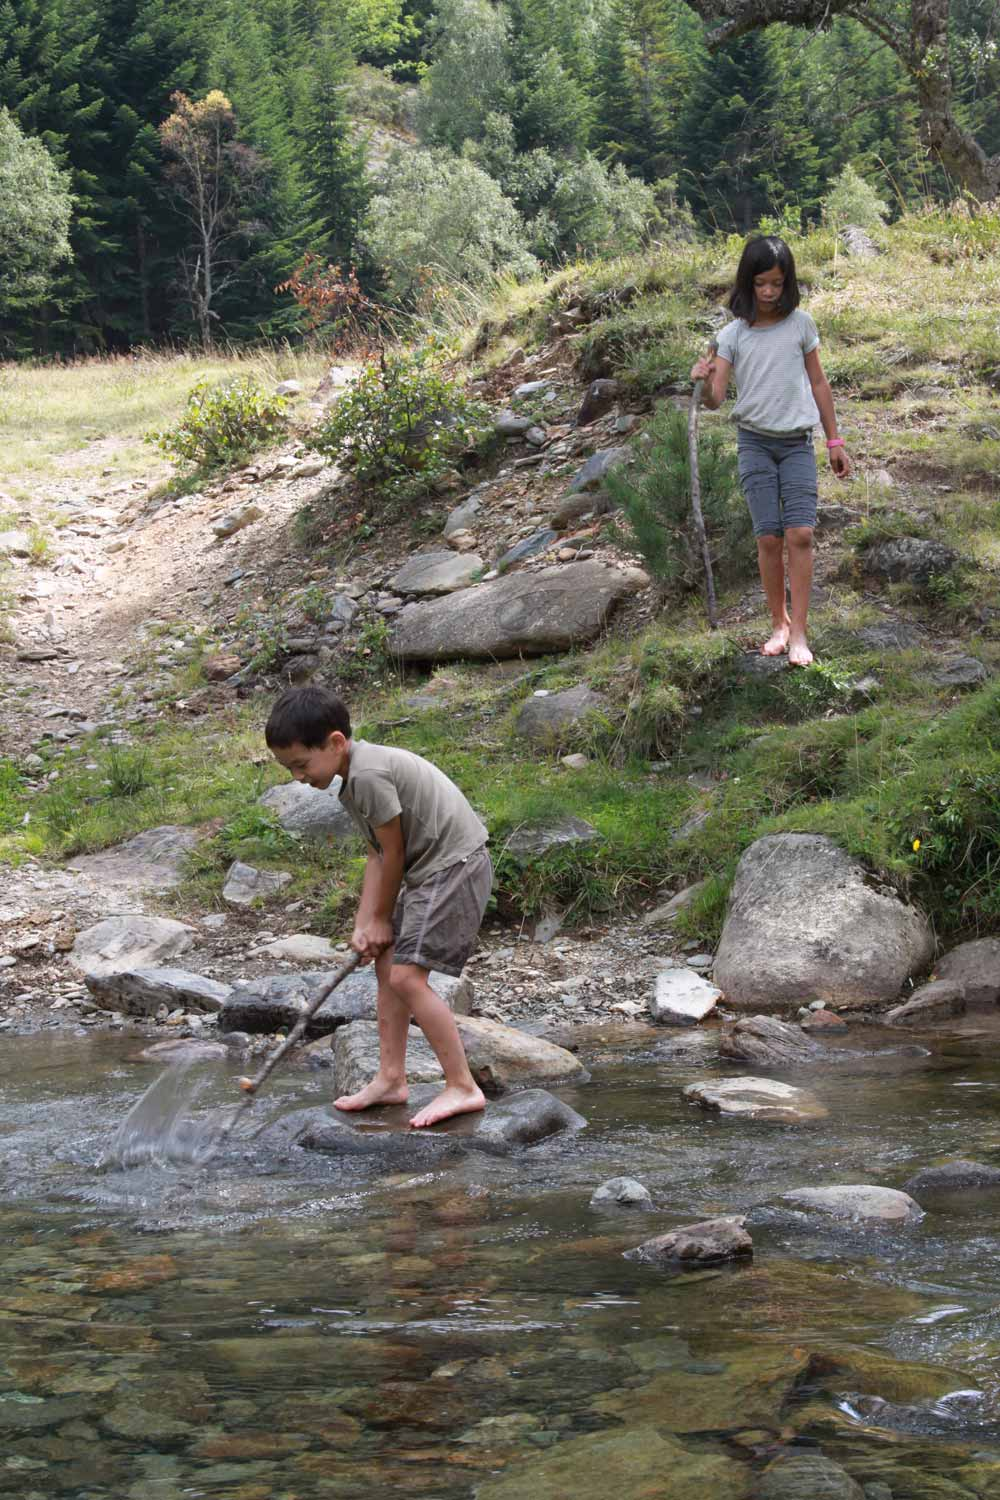 teresa children explore nature stream